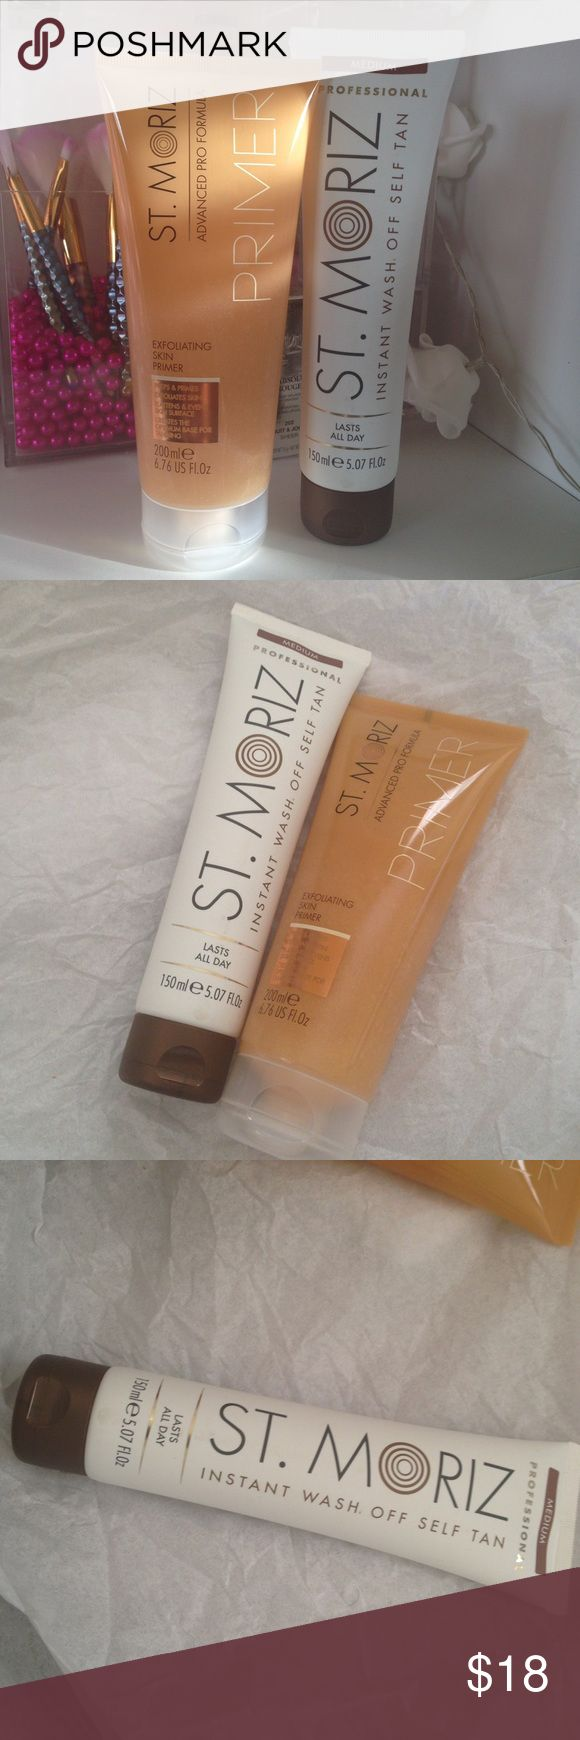 Self tanner. Medium. Exfoliating scrub St Moriz instant wash off self tan & exfoliating primer. Both are brand new full.  Both are selling for one price. walmart Other